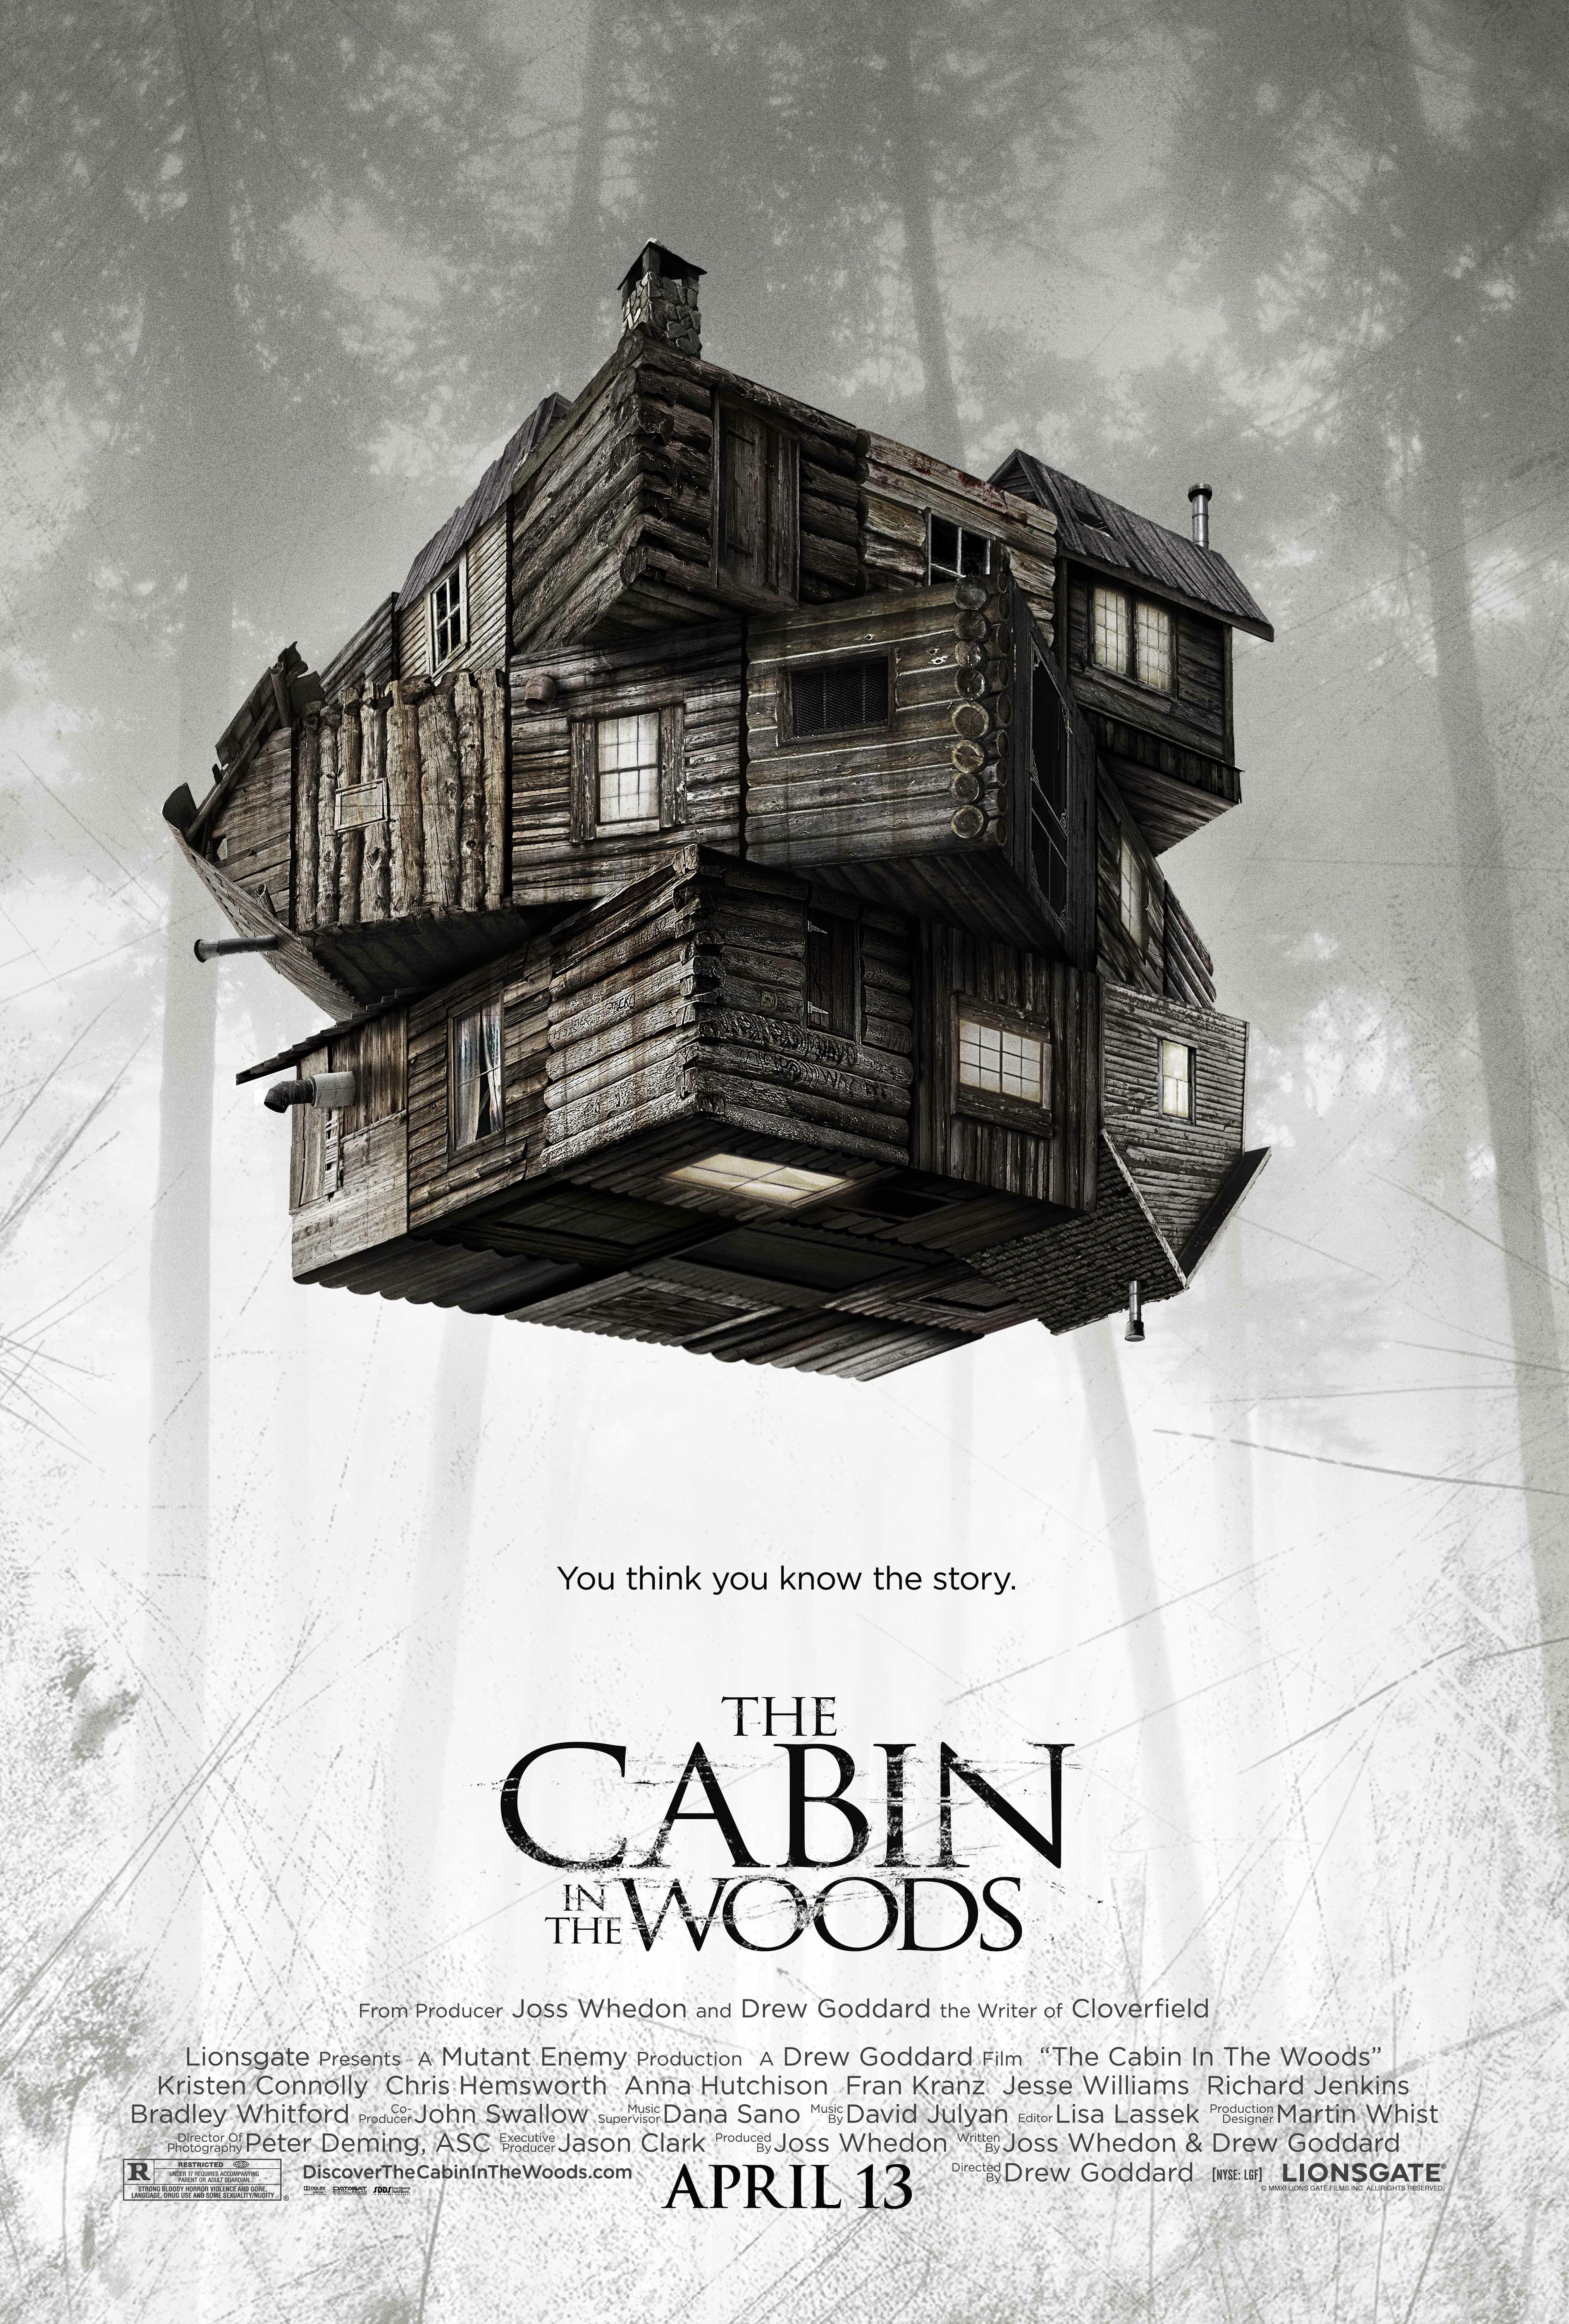 NEW POSTER AND TRAILER FOR THE CABIN IN THE WOODS